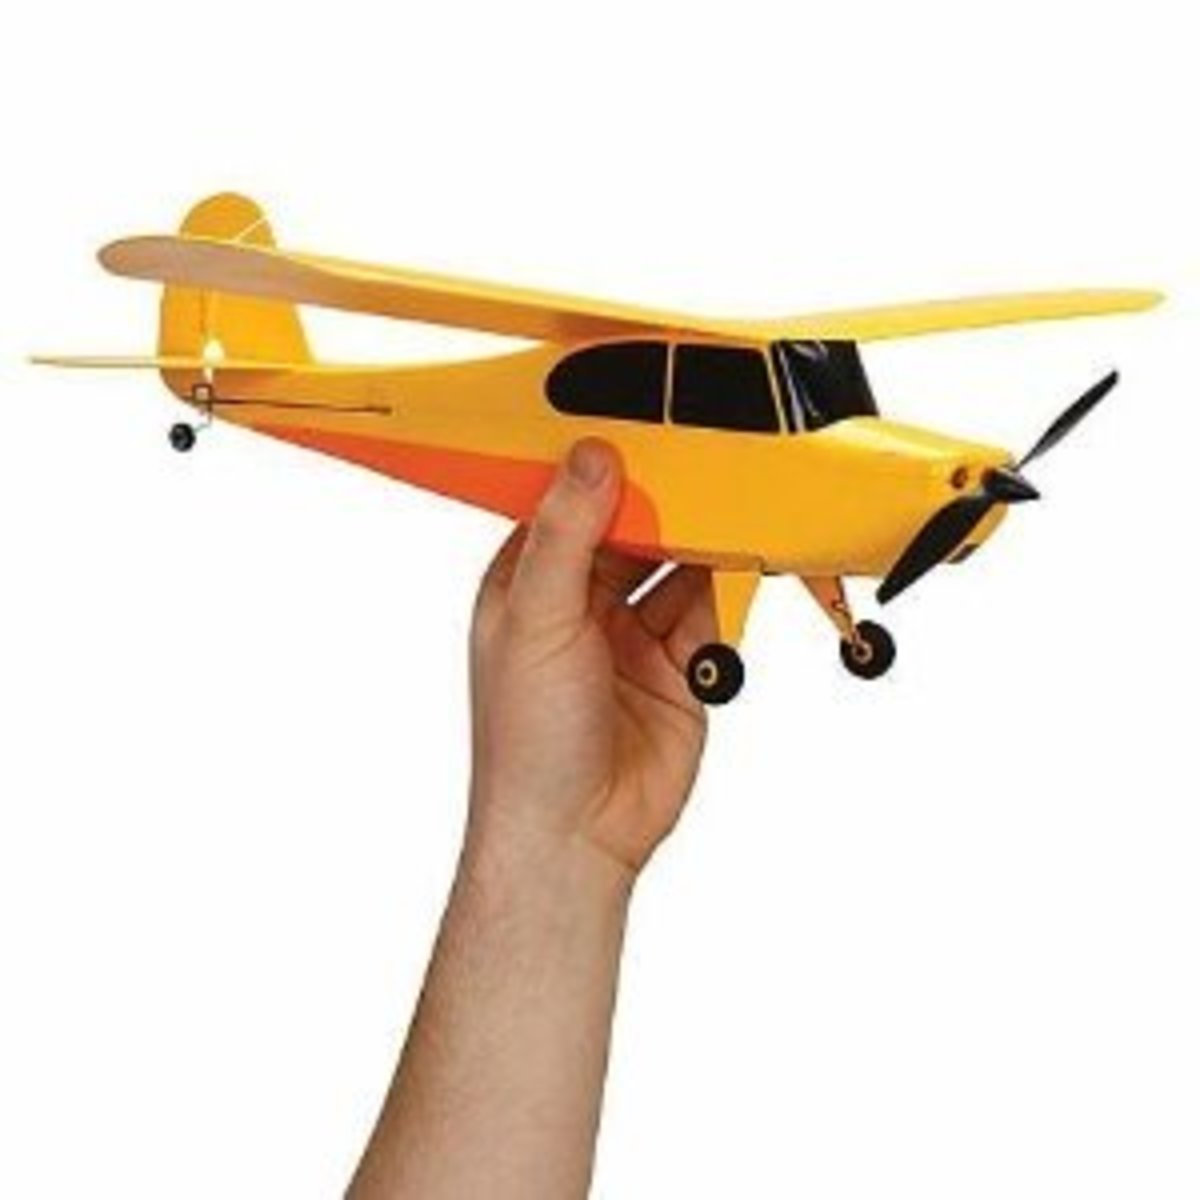 RC Trainer Airplane Review - The HobbyZone Champ